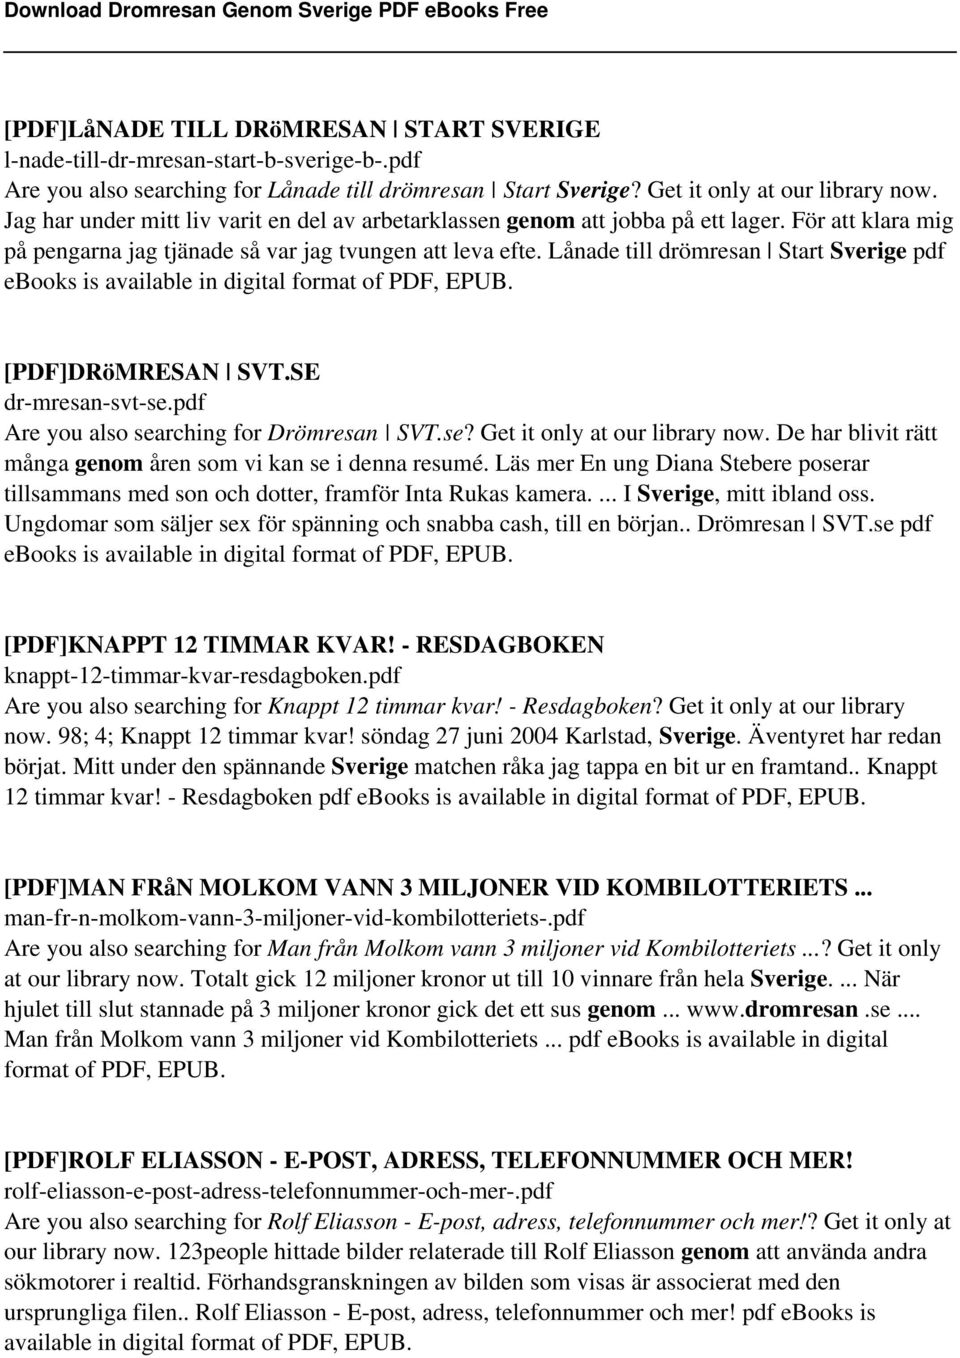 Lånade till drömresan Start Sverige pdf ebooks is available in digital format of PDF, EPUB. [PDF]DRöMRESAN SVT.SE dr-mresan-svt-se.pdf Are you also searching for Drömresan SVT.se? Get it only at our library now.